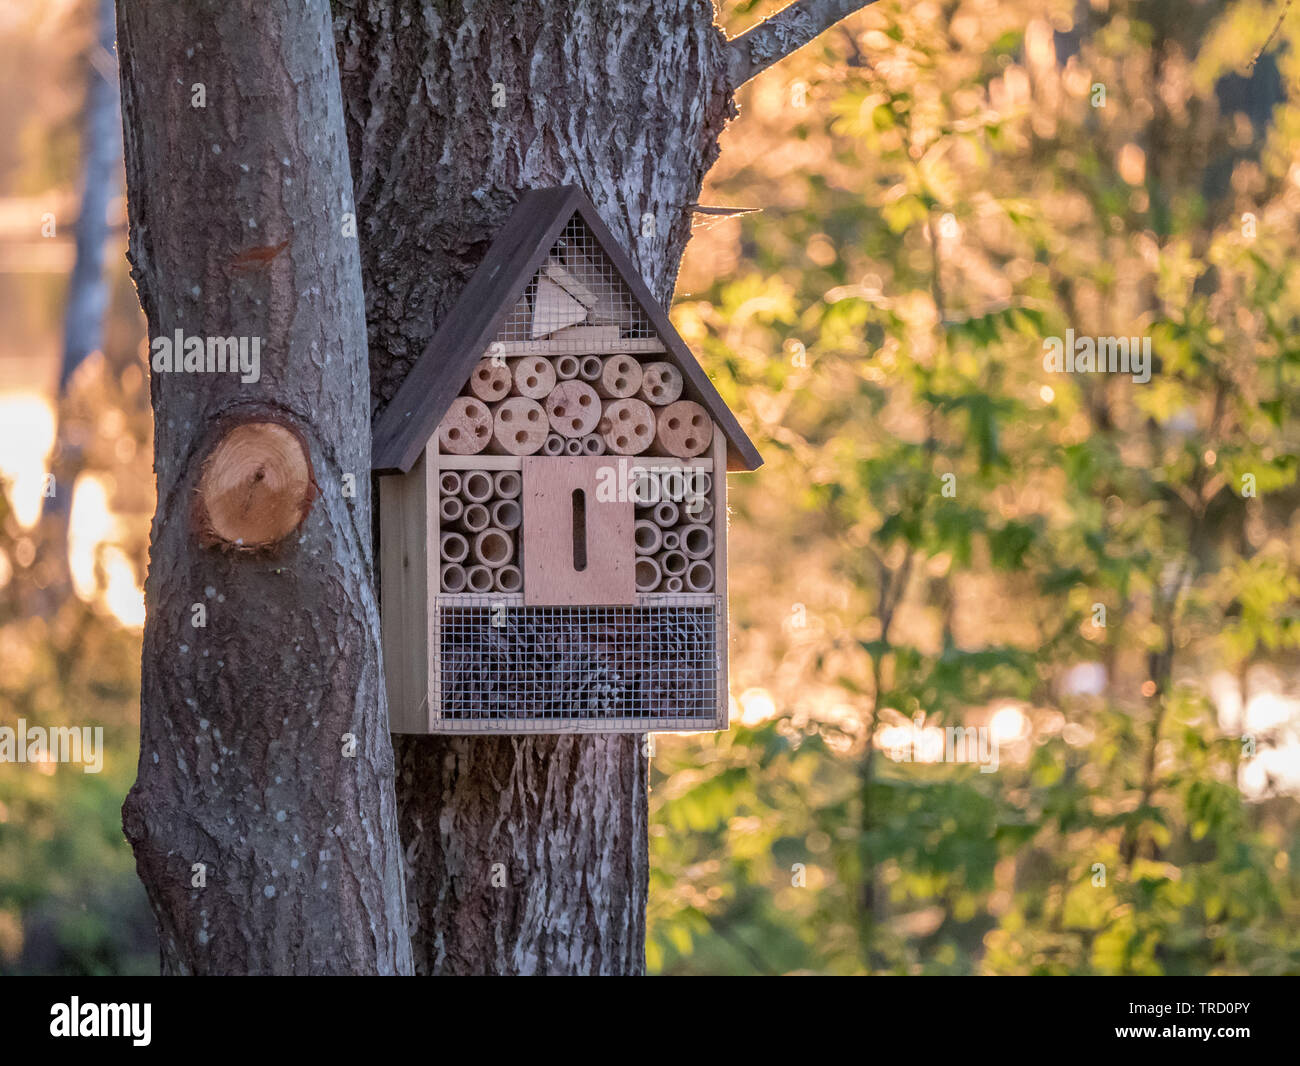 Garden Life Insect Hotel Wooden Bug House Natural Nest Shelter Box